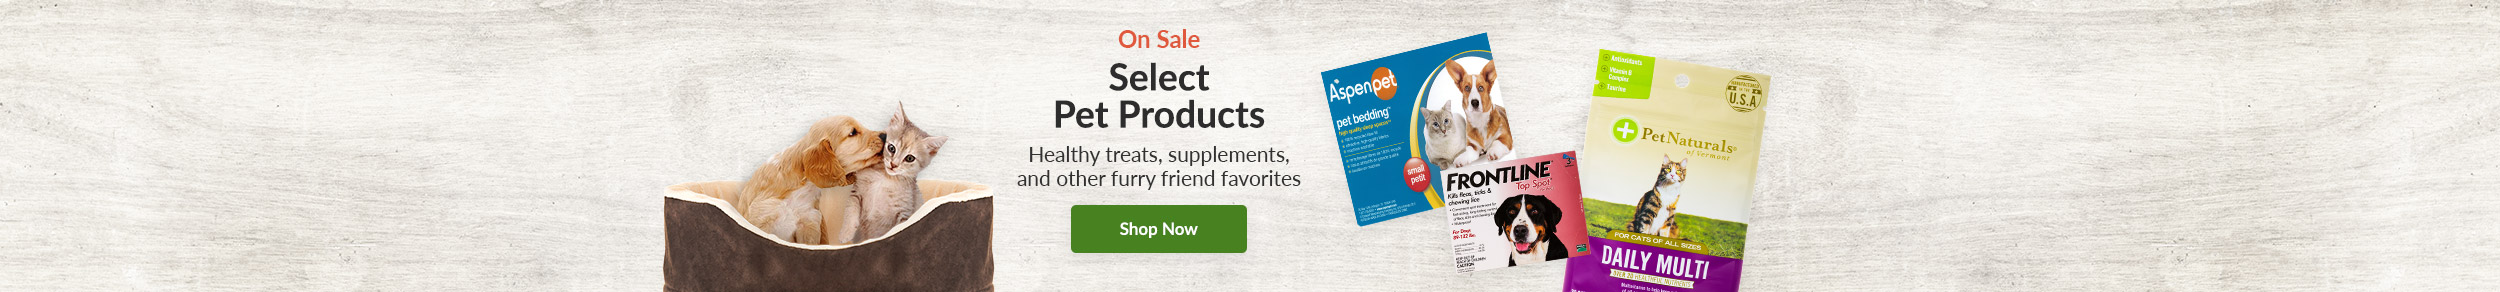 https://i3.pureformulas.net/images/static/On-Sale-Select-Pet-Products_122818.jpg